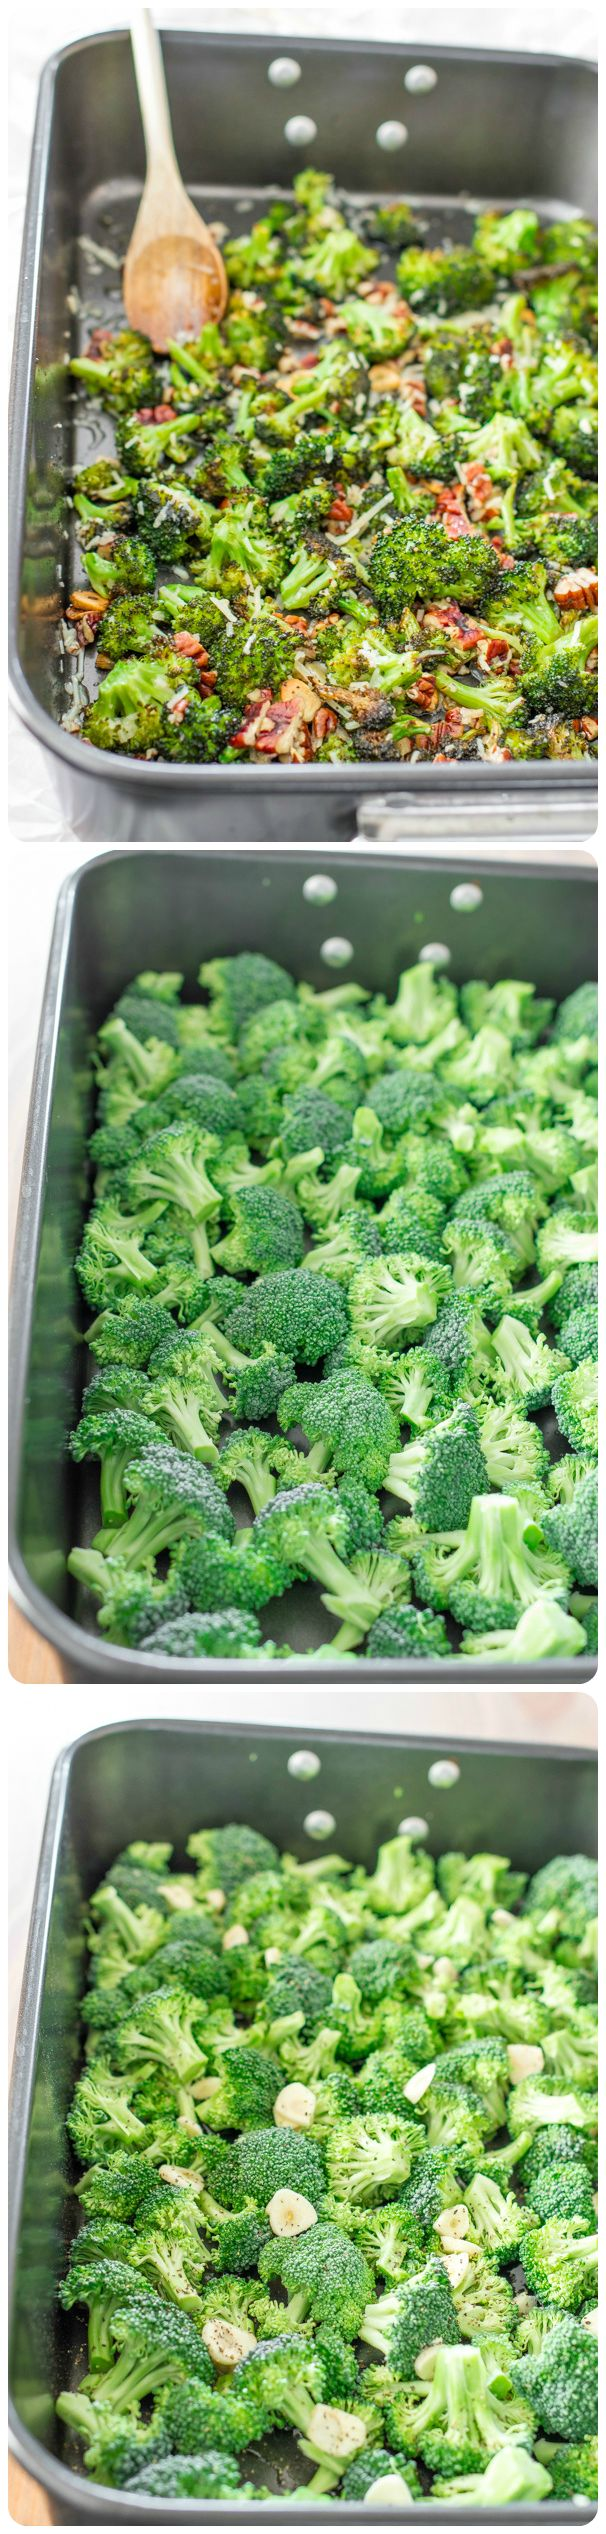 Parmesan Roasted Broccoli - truly the best roasted broccoli you will ever have. #banting